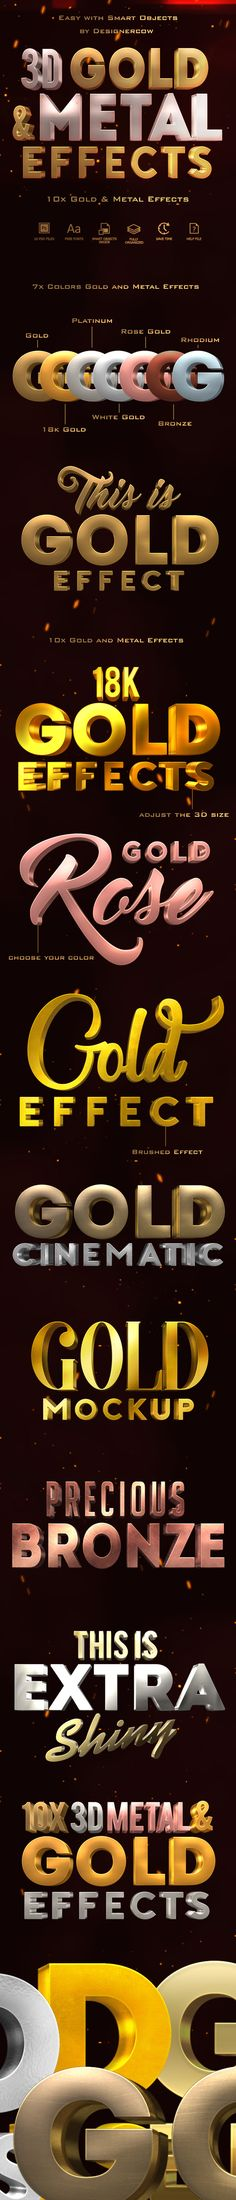 3D Gold and Metal Effects - #Text Effects #Actions Download here: https://graphicriver.net/item/3d-gold-and-metal-effects/19406450?ref=alena994